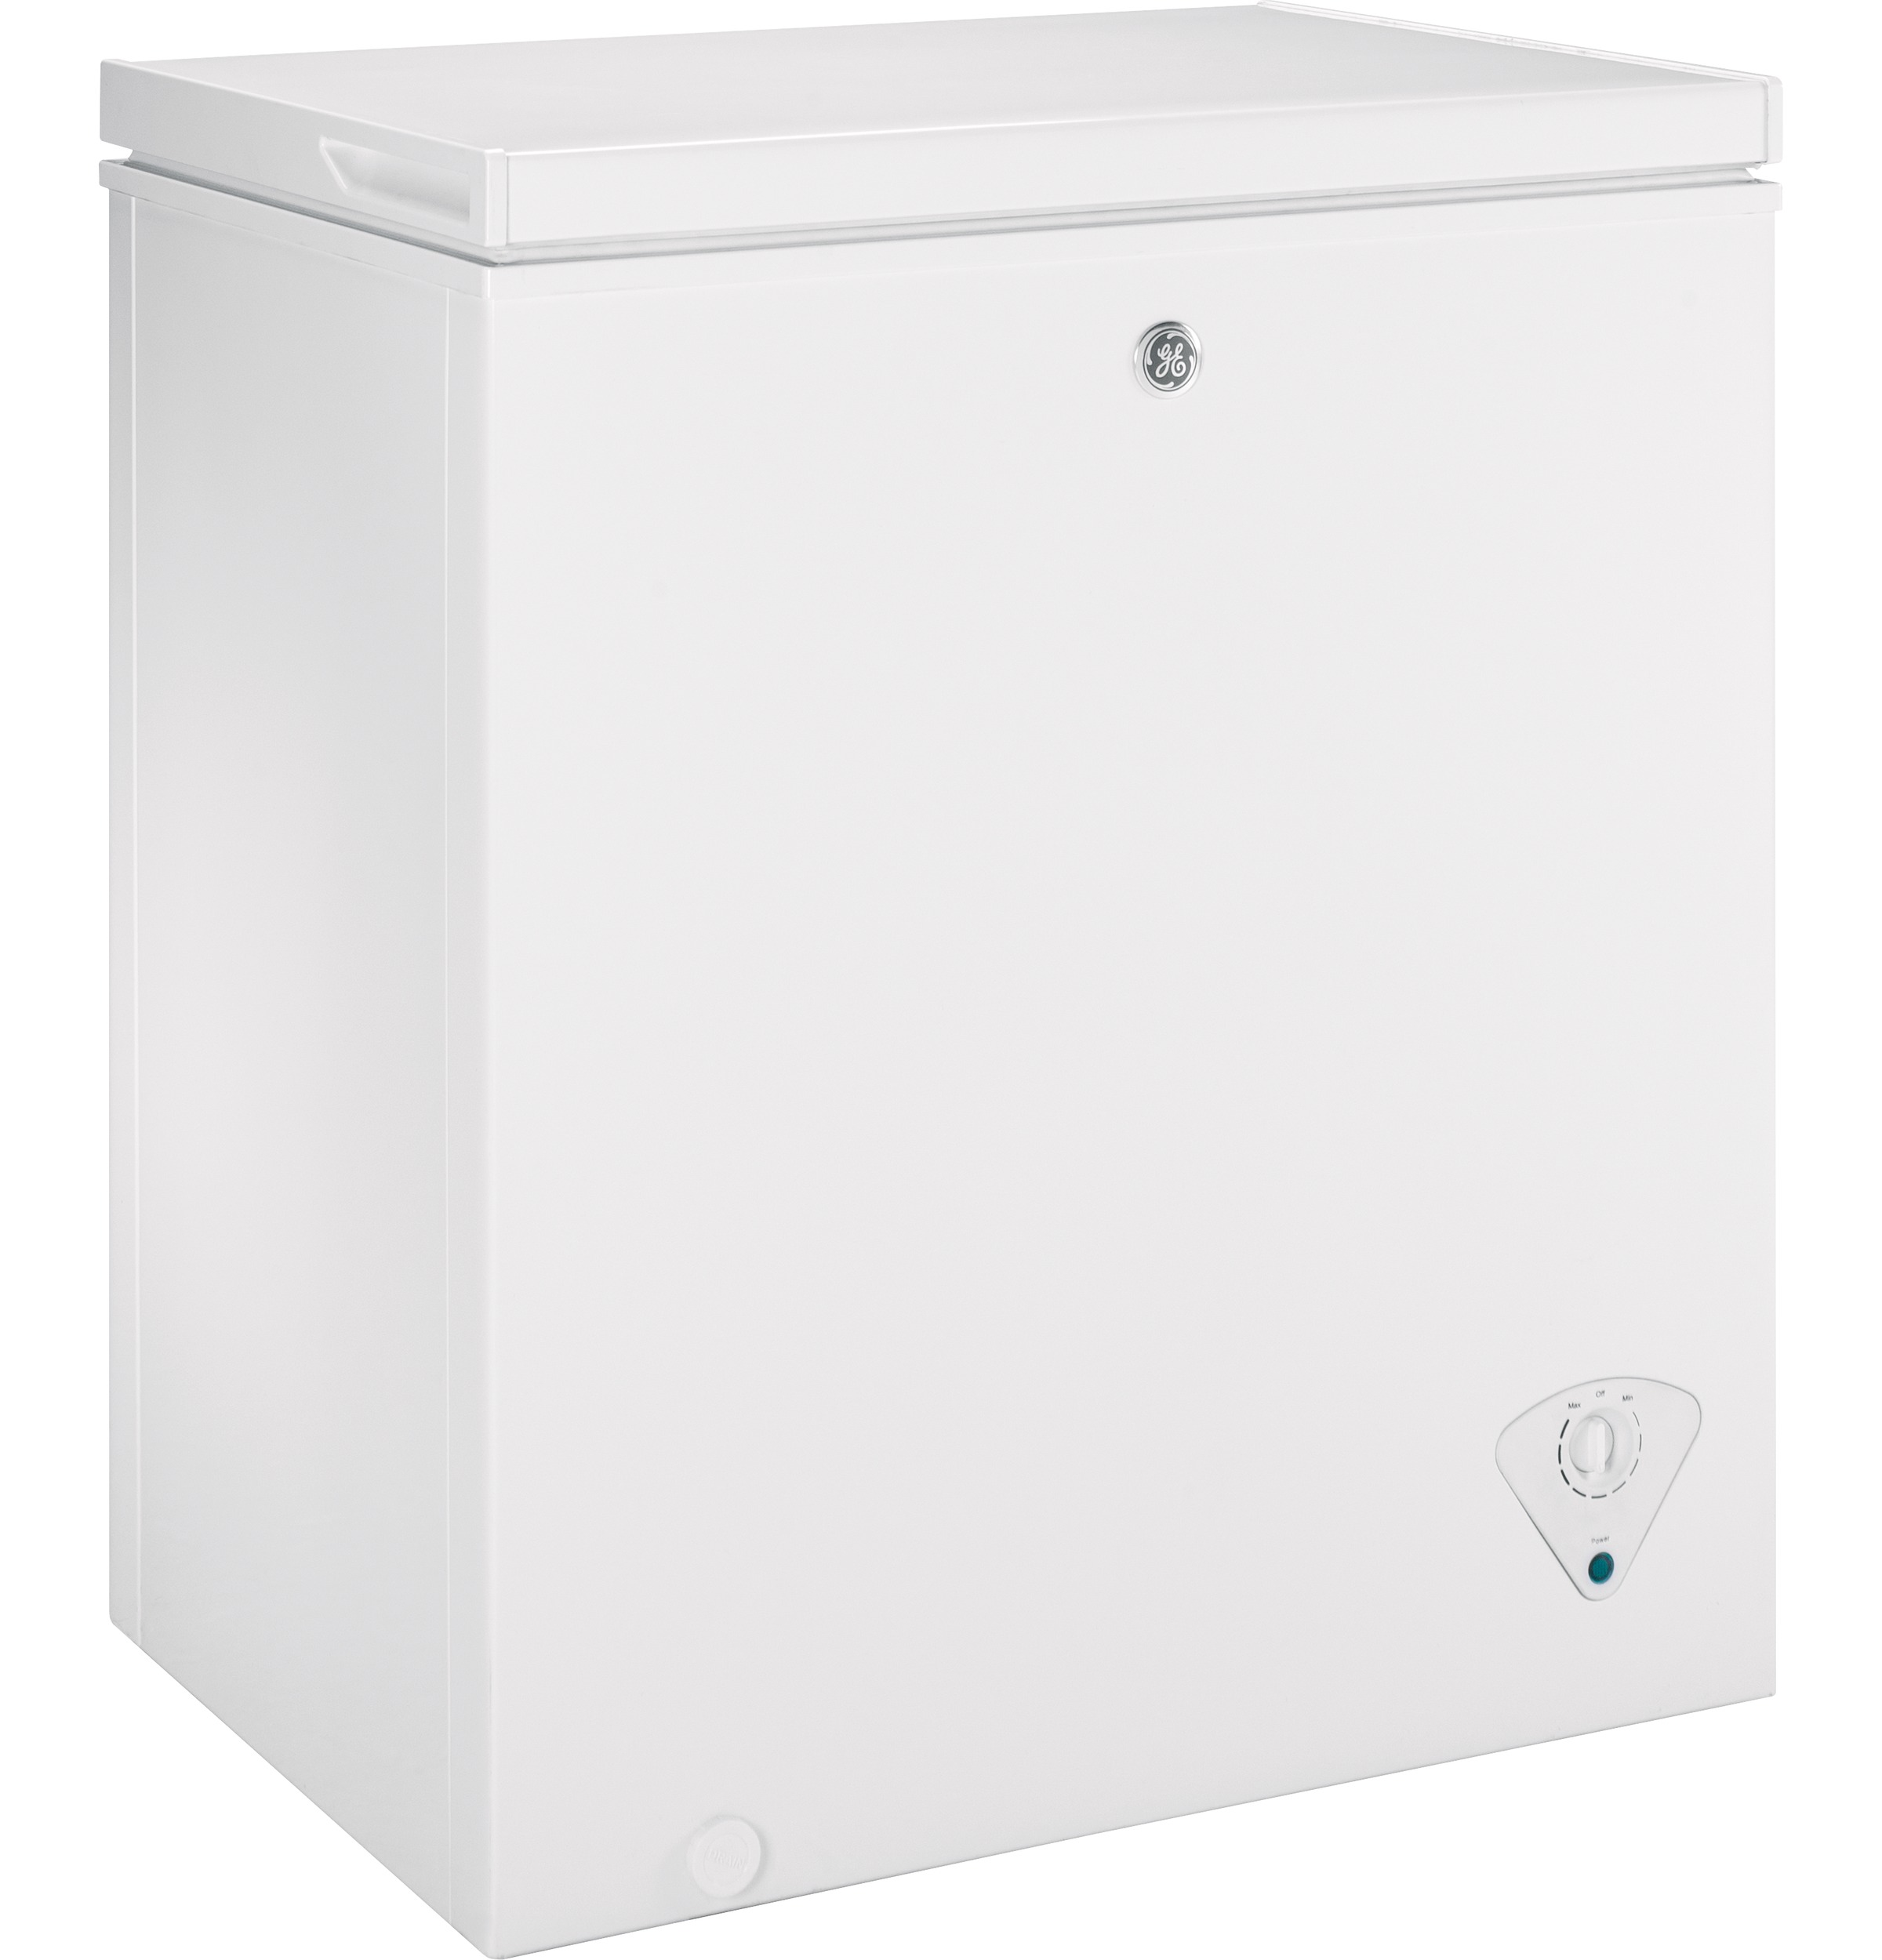 ge® 5 0 cu ft manual defrost chest zer fcm5skww ge product image product image